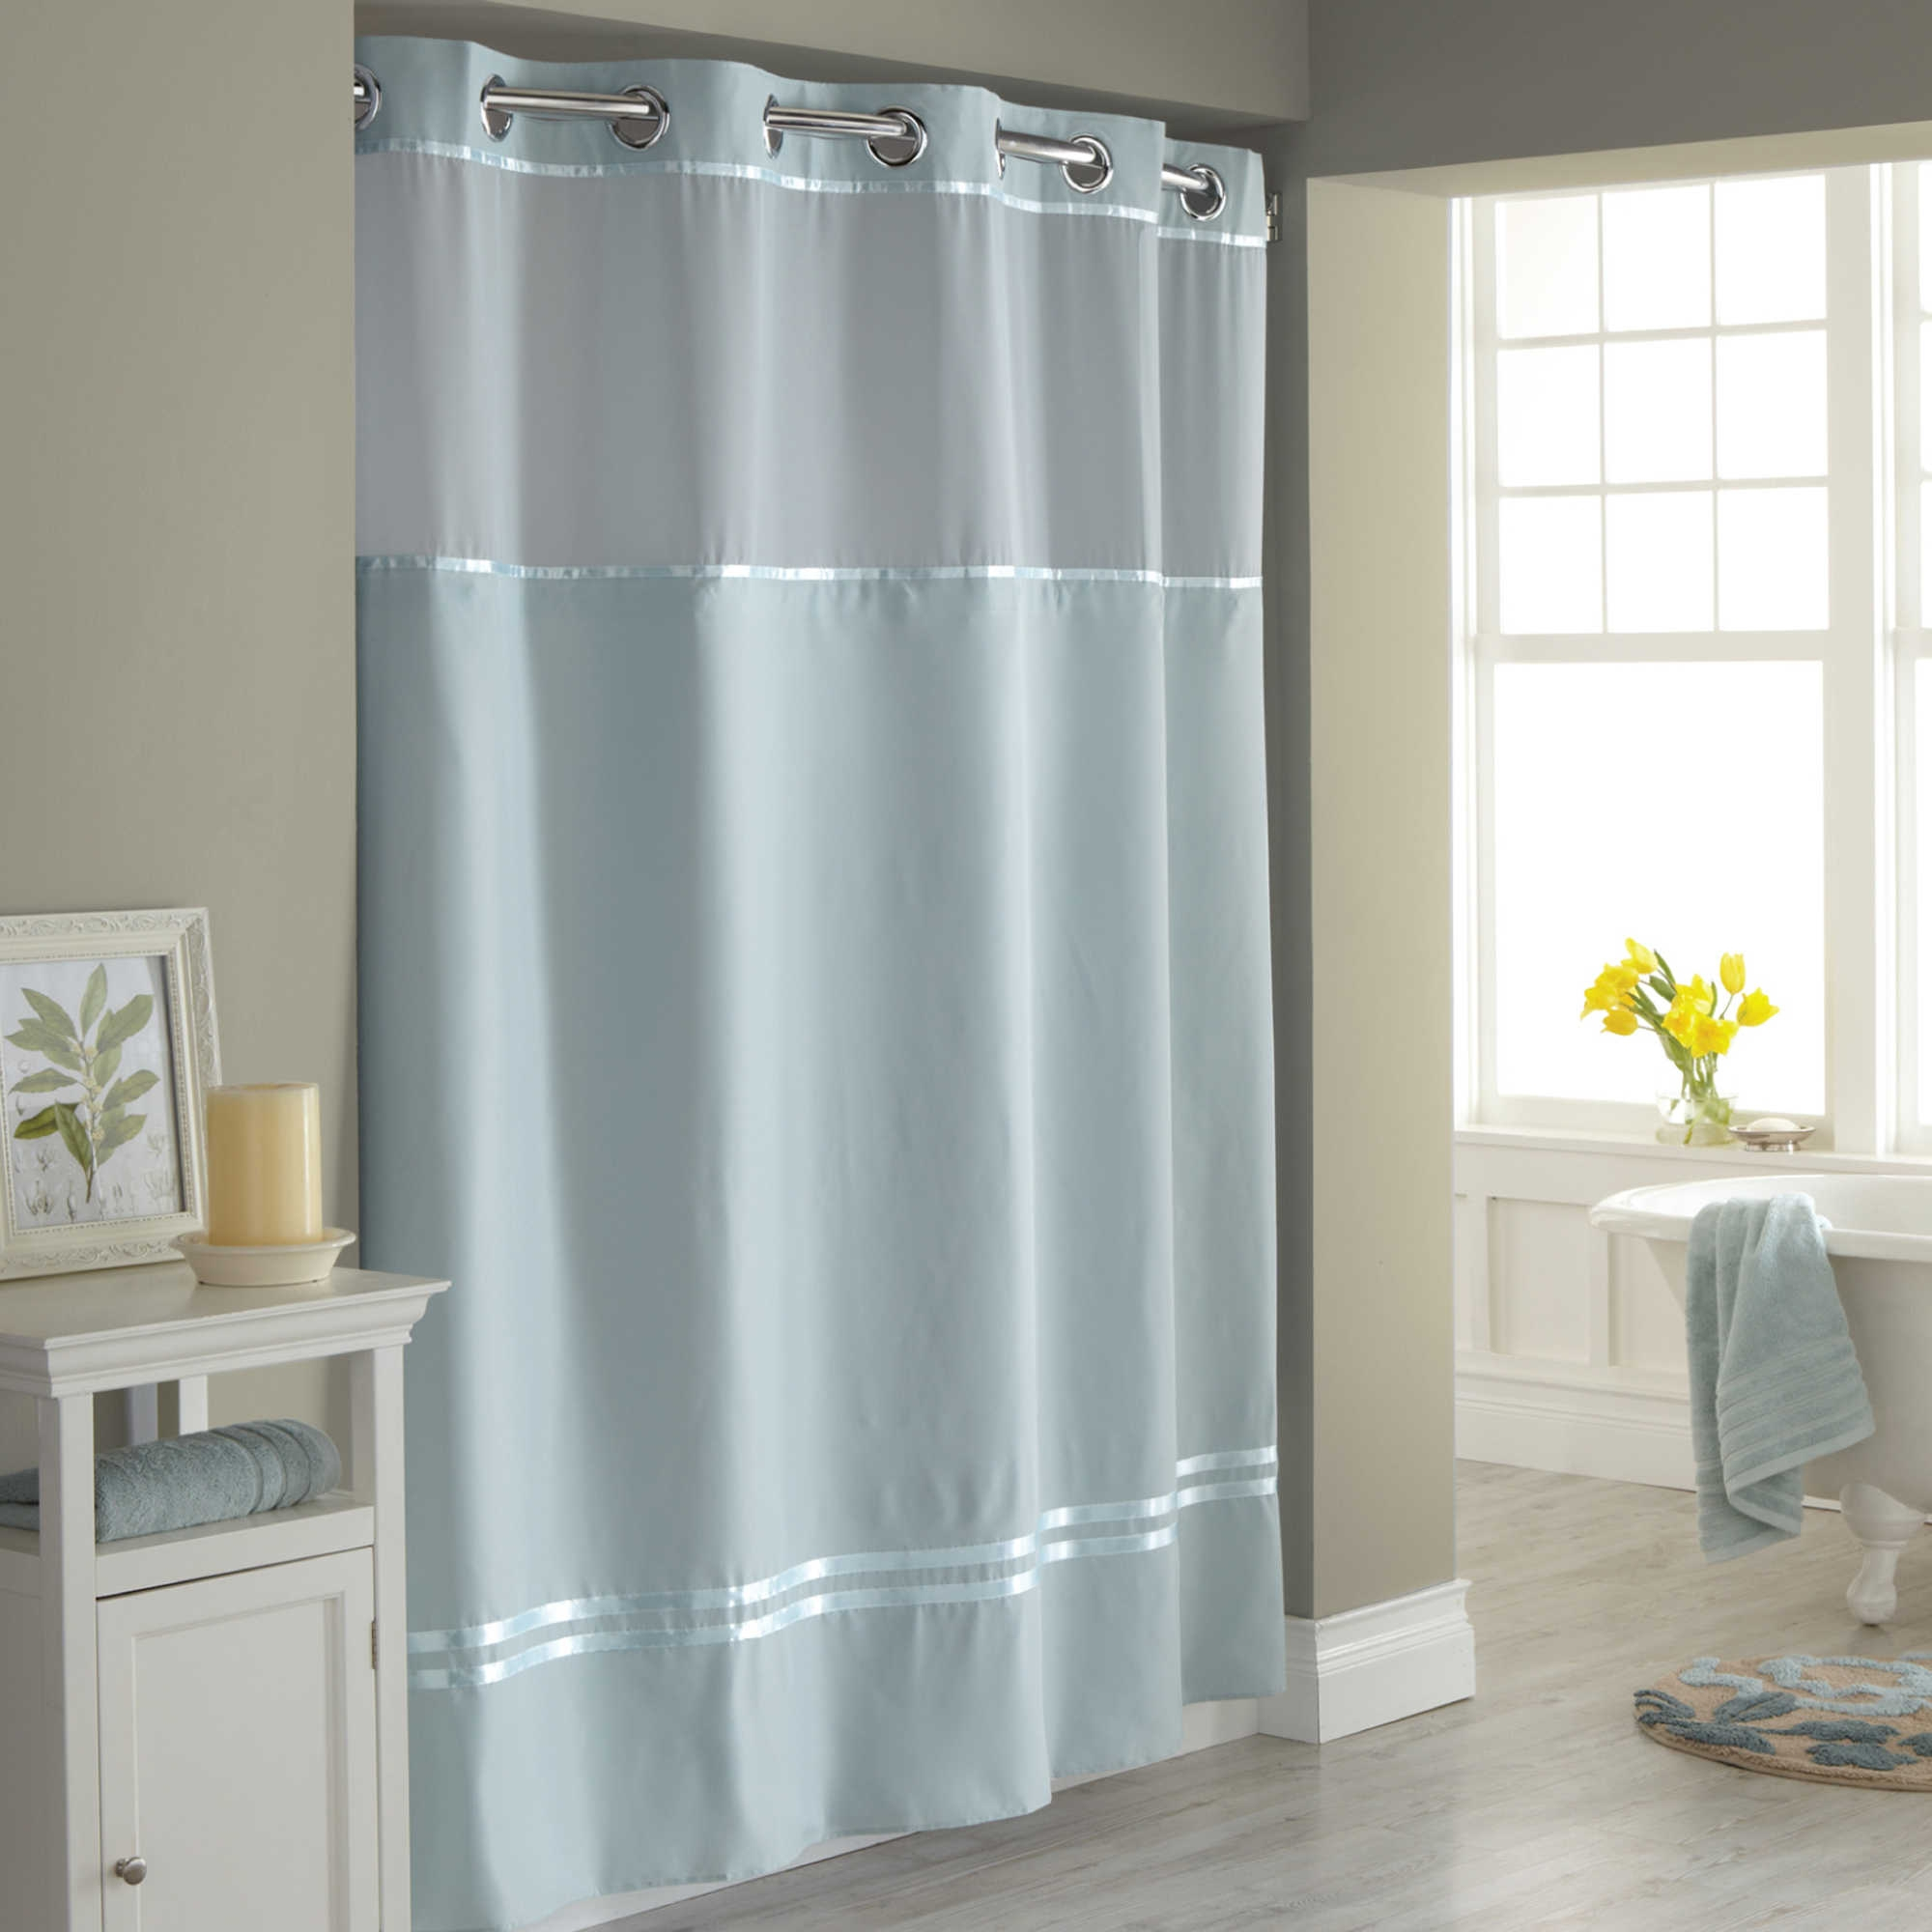 7 Foot Shower Curtain Rod Ideas With Measurements 2000 X